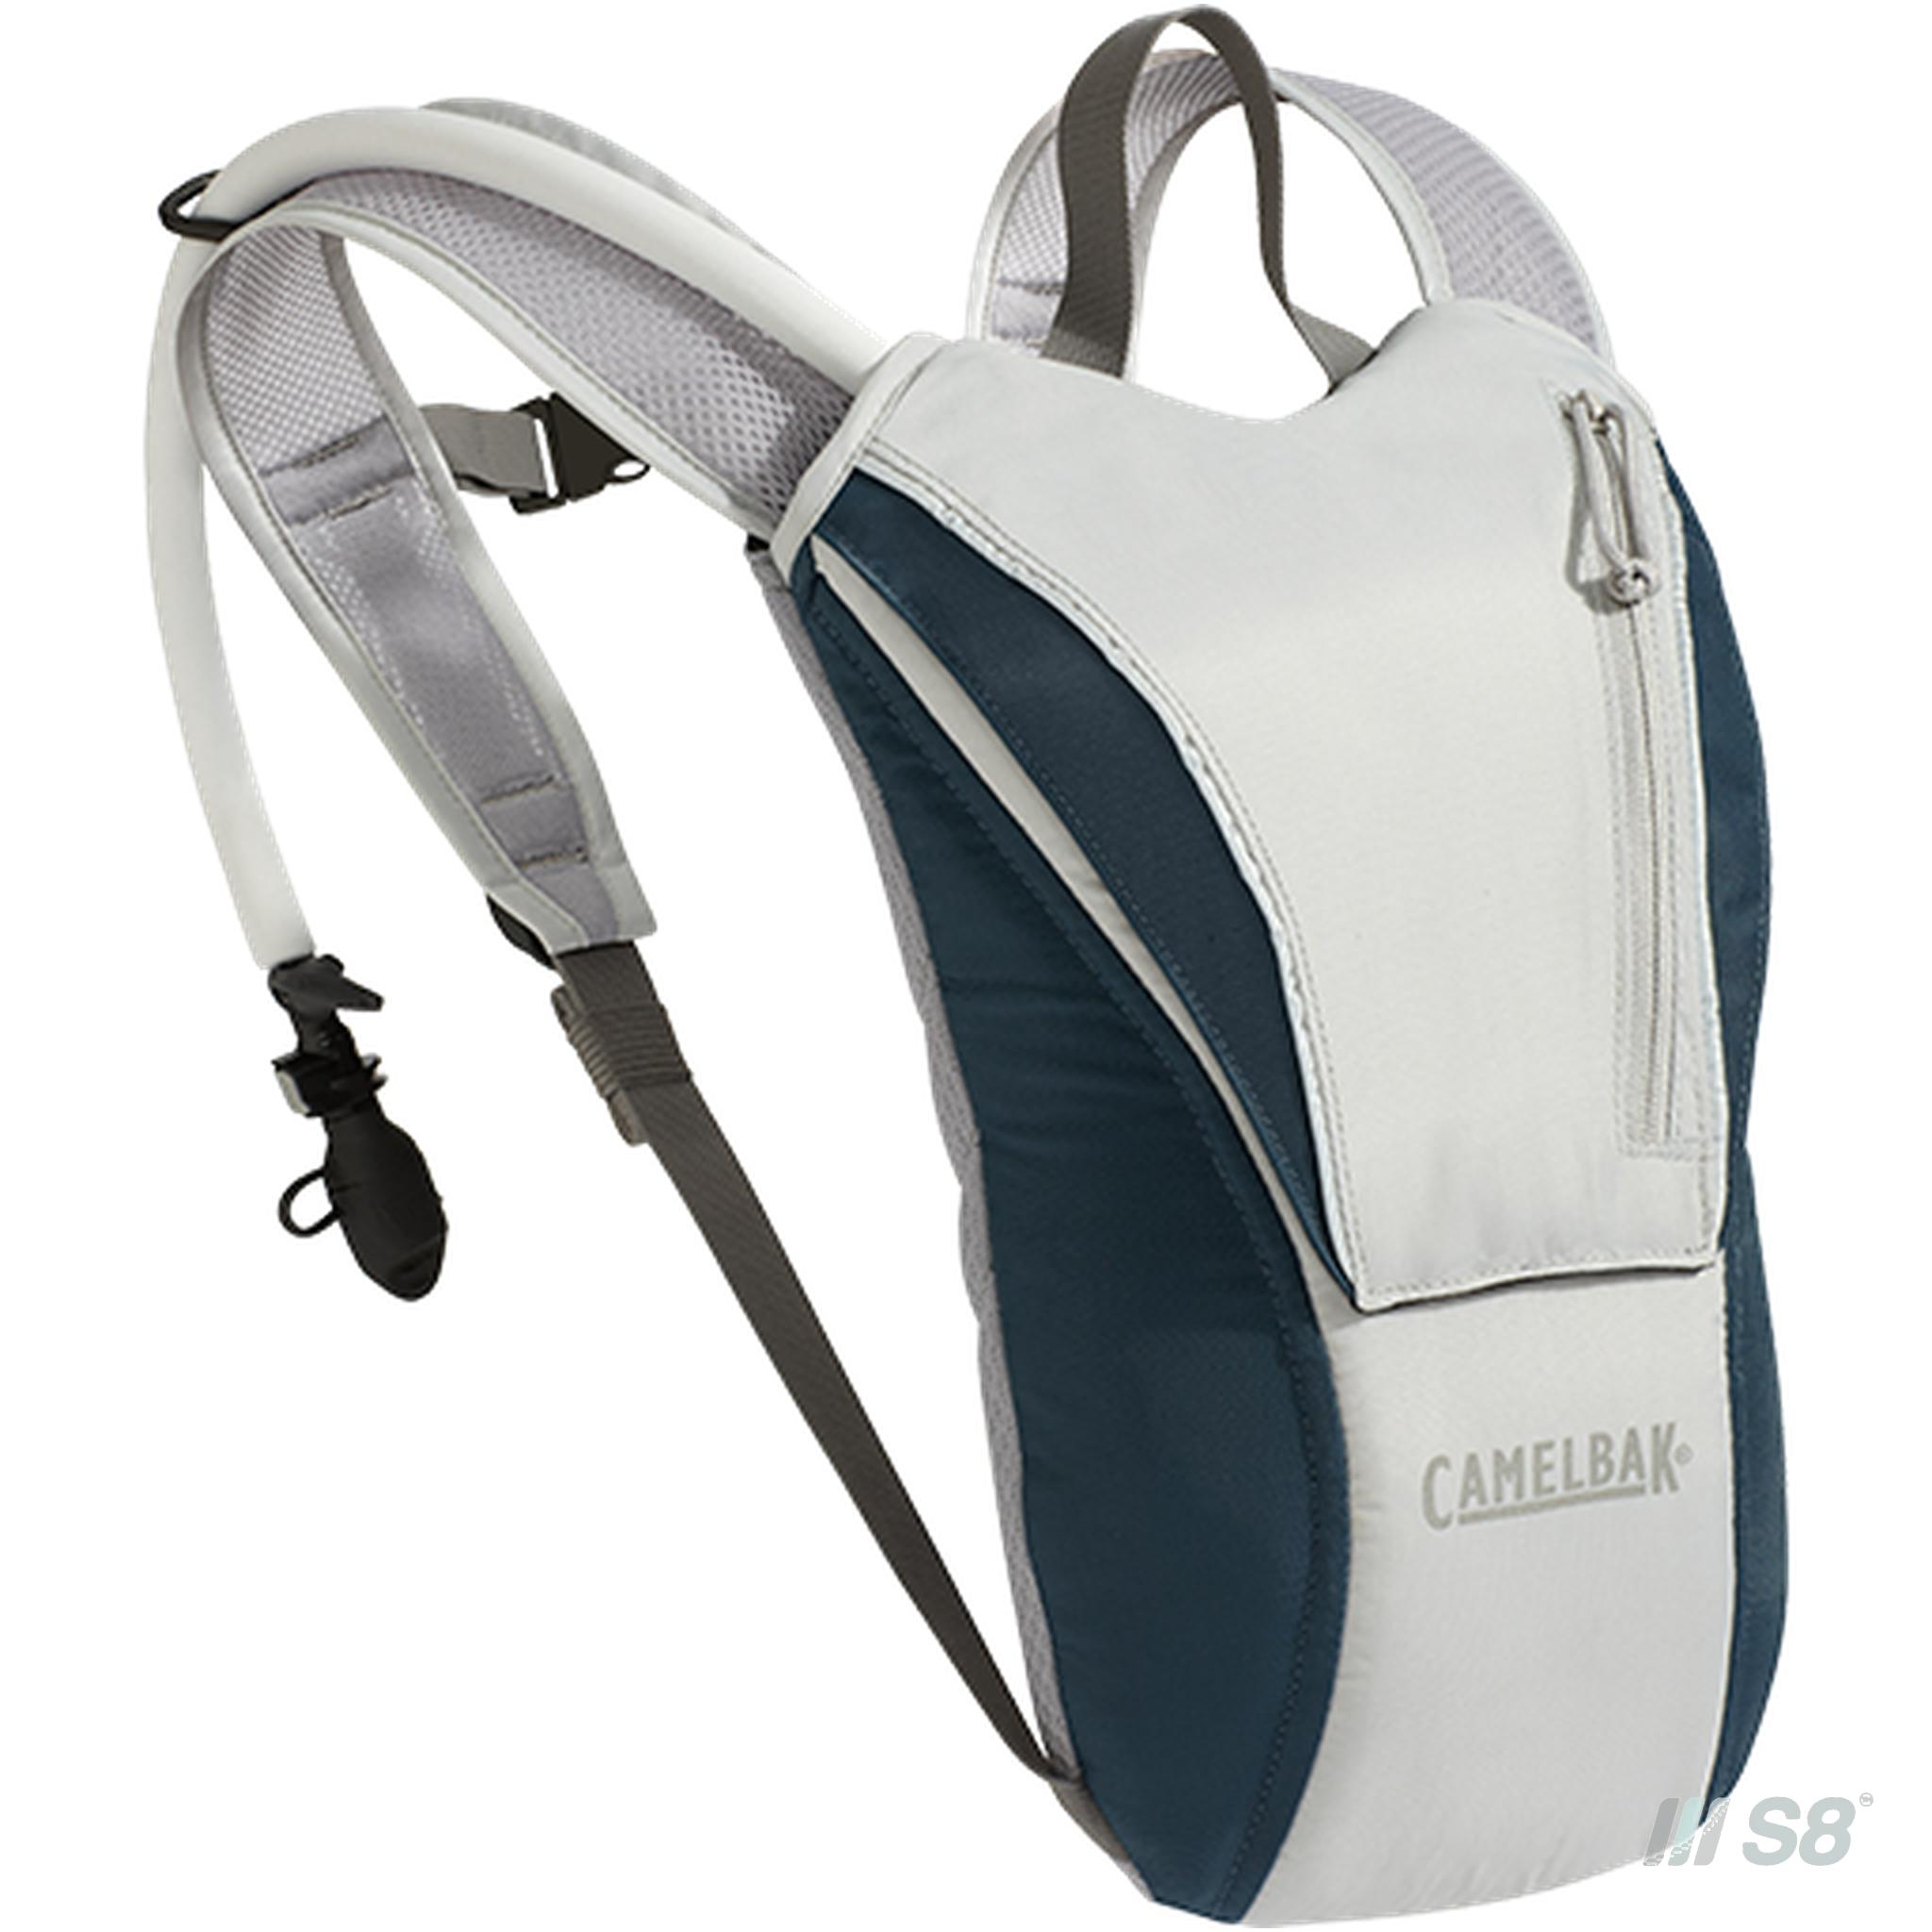 Watermaster䋢-Camelbak-S8 Products Group